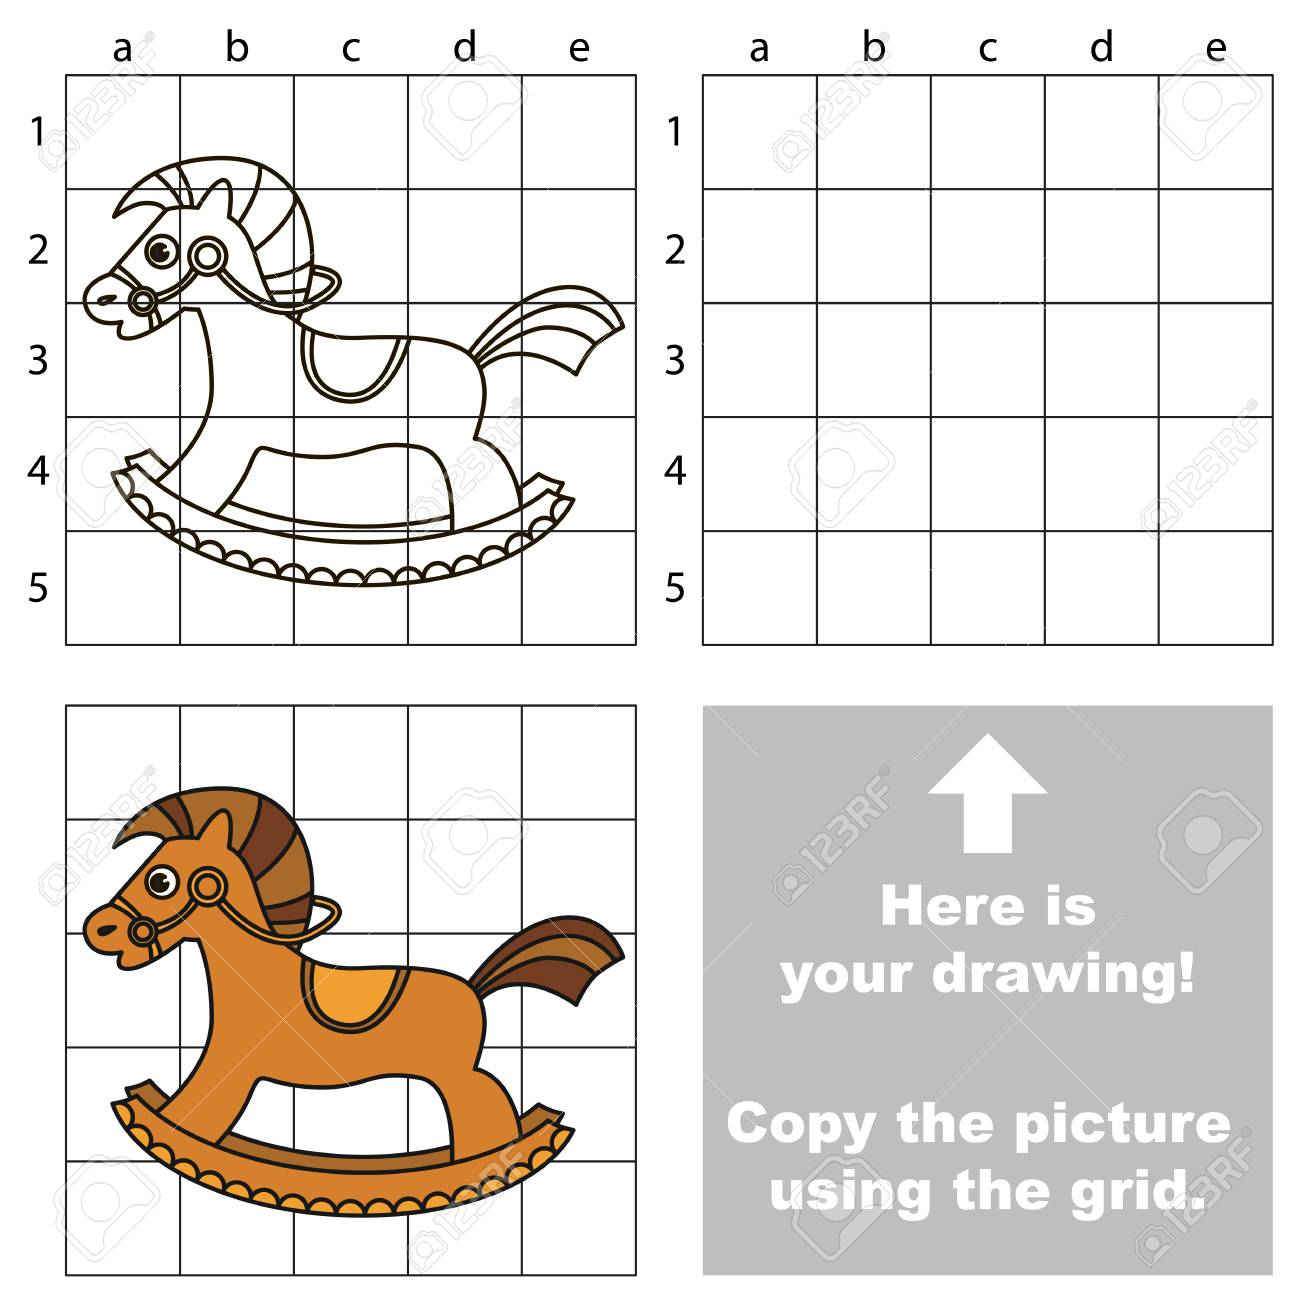 Copy The Picture Using Grid Lines The Simple Educational Game Royalty Free Cliparts Vectors And Stock Illustration Image 75834299